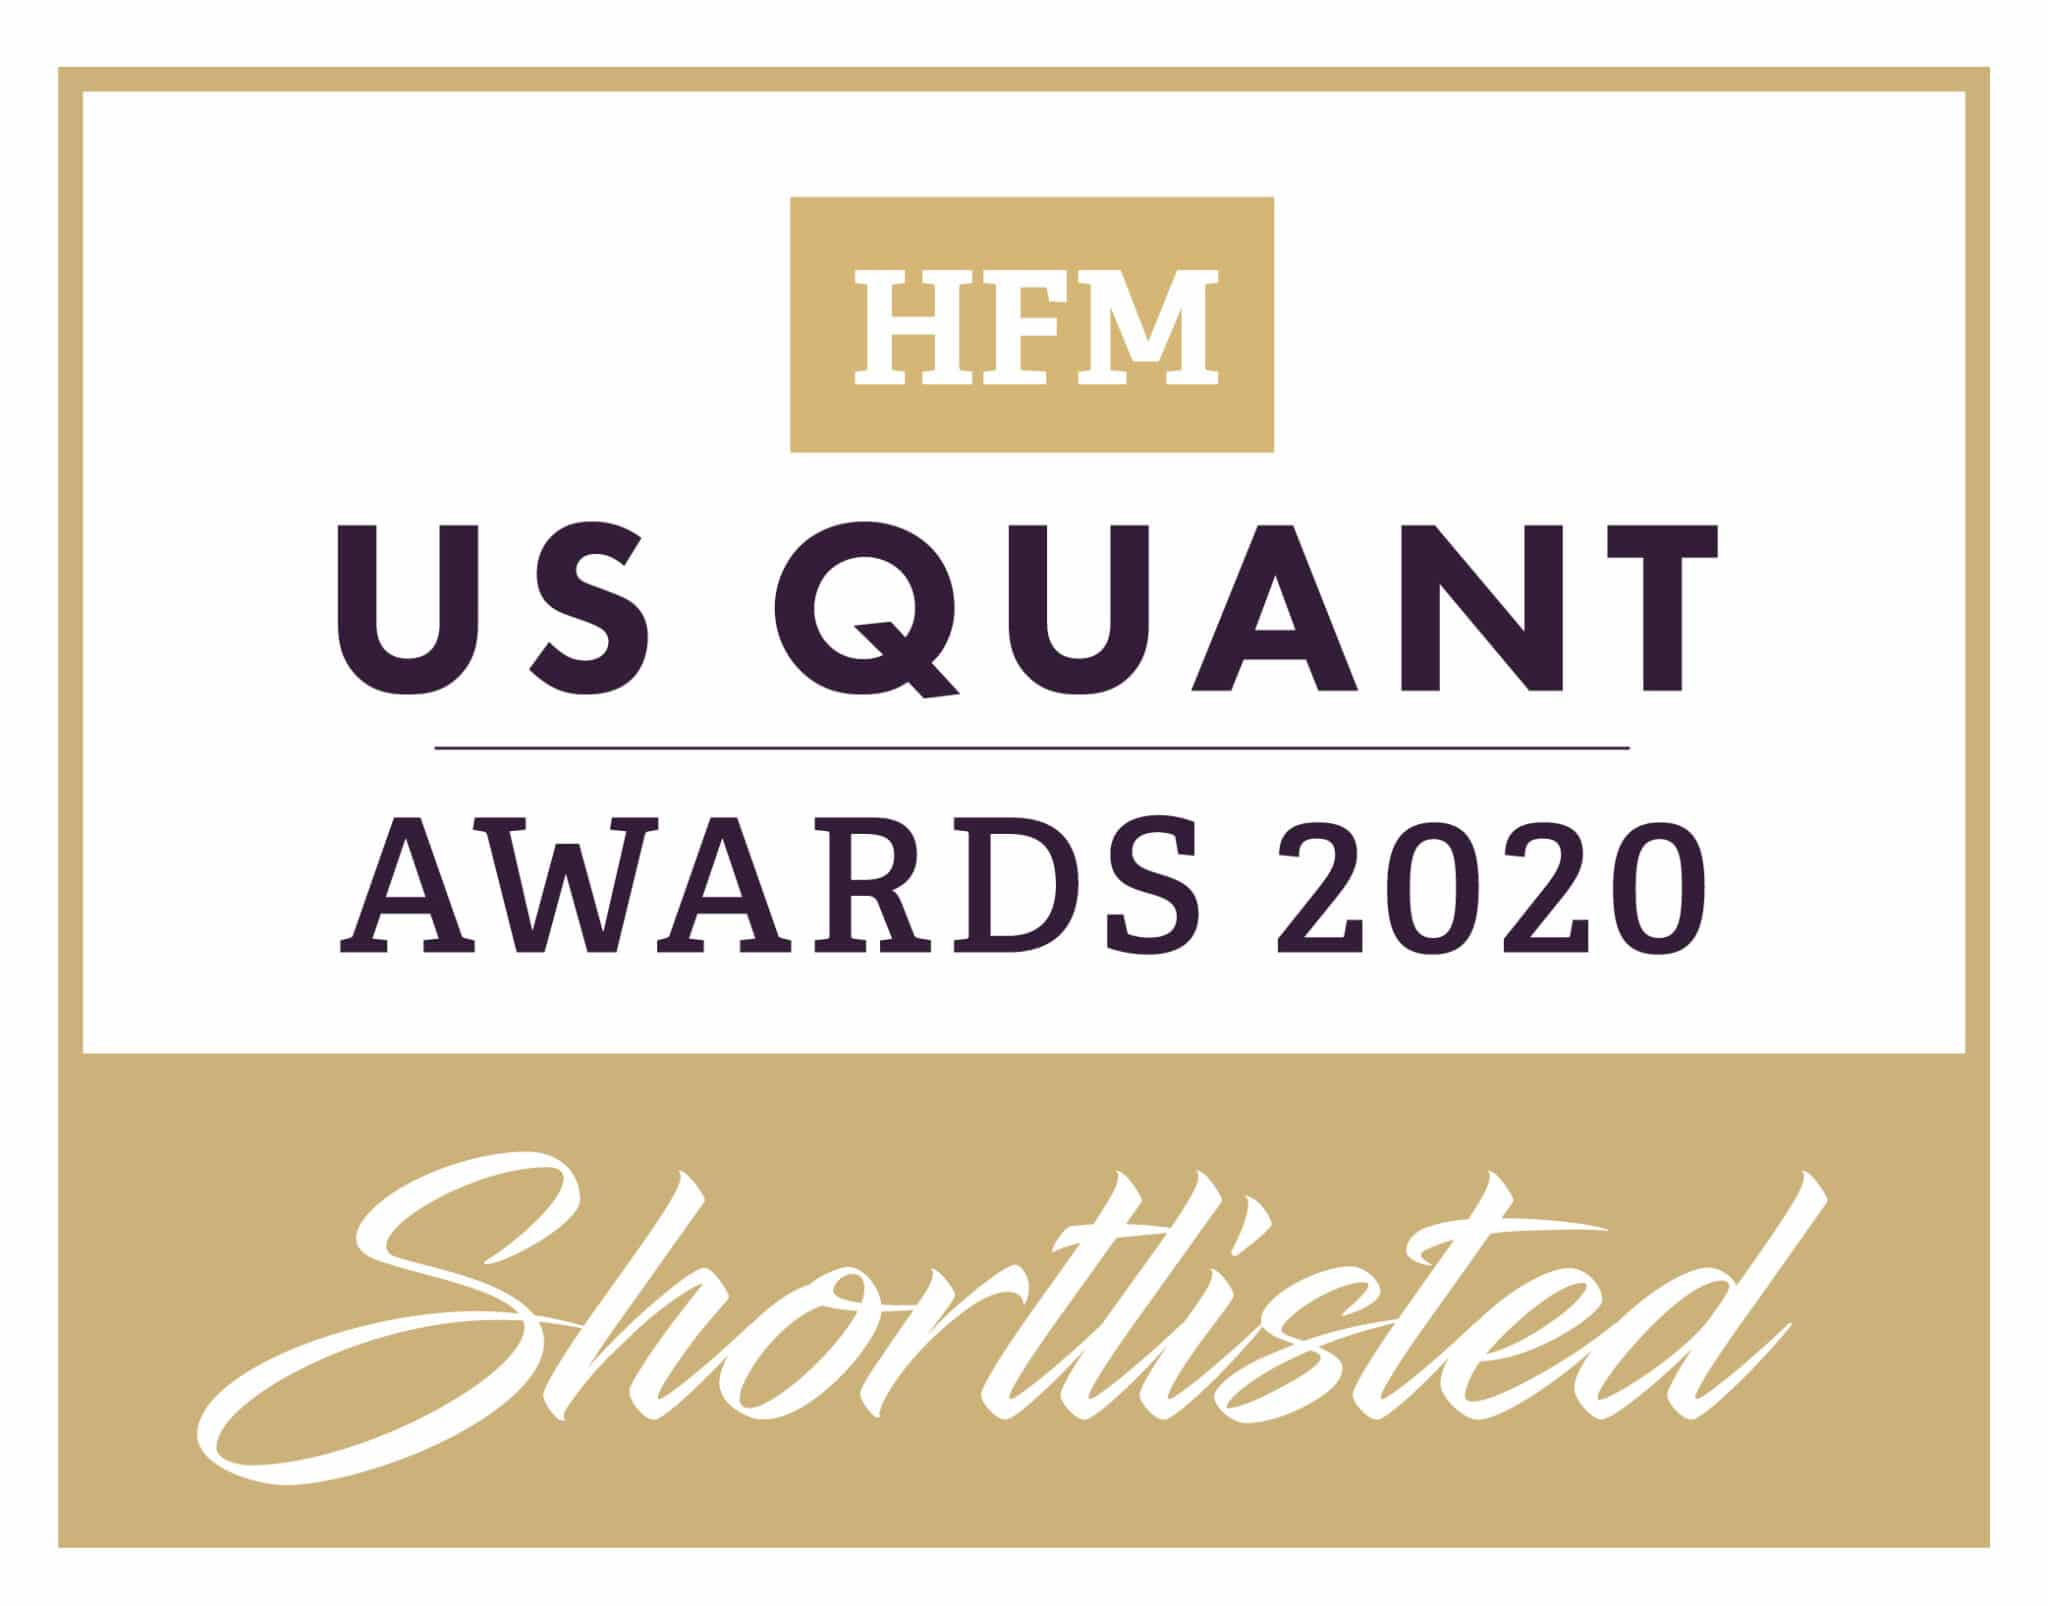 hfm-us-quant-awards-2020